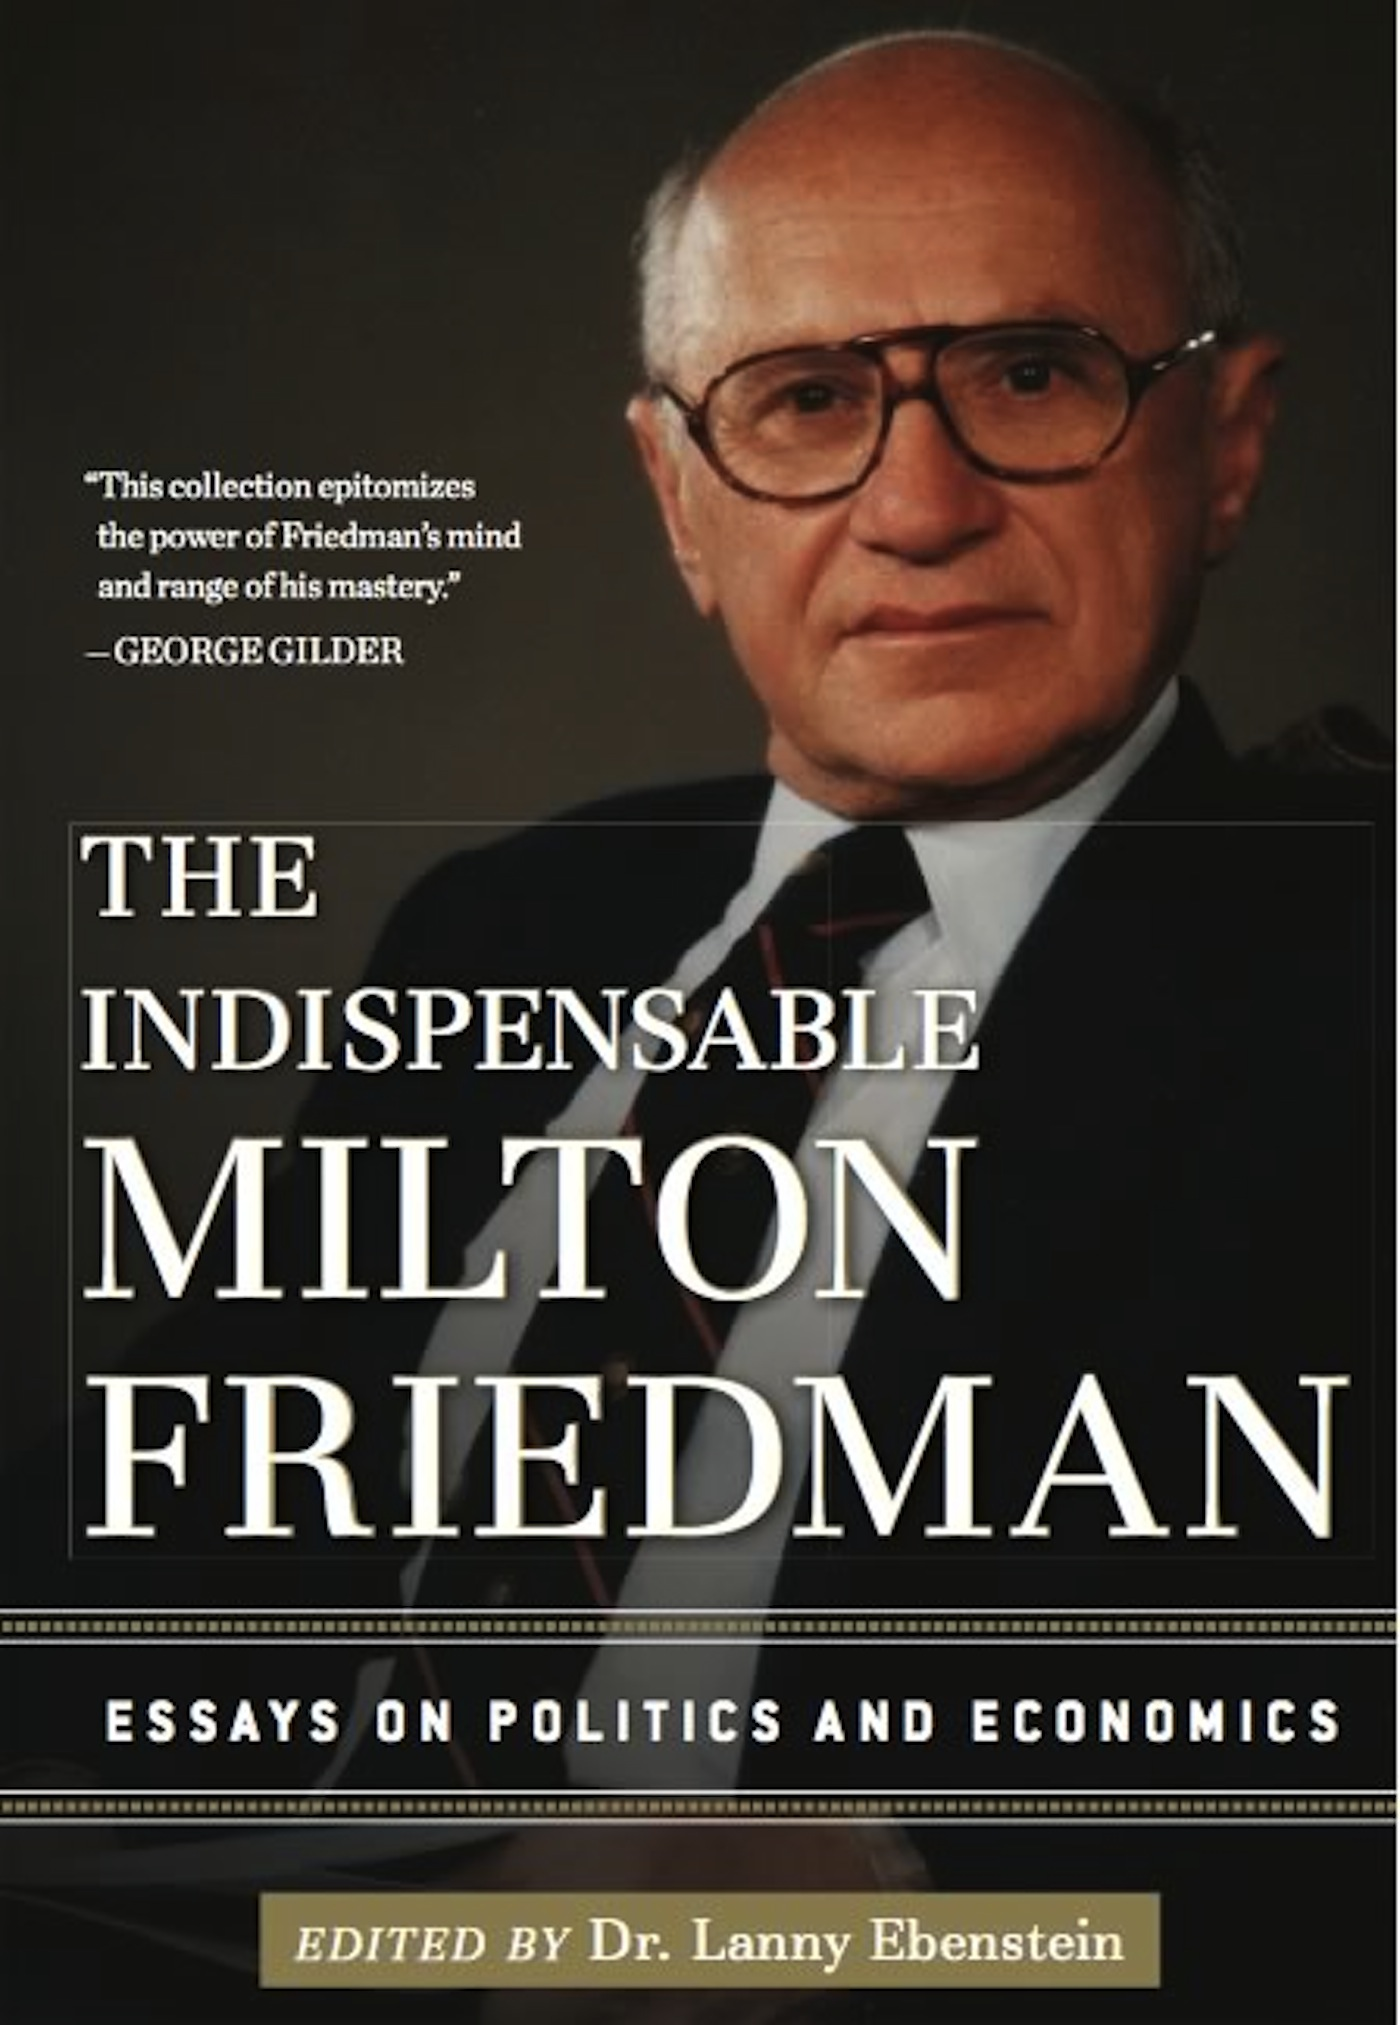 friedman vs freeman essay